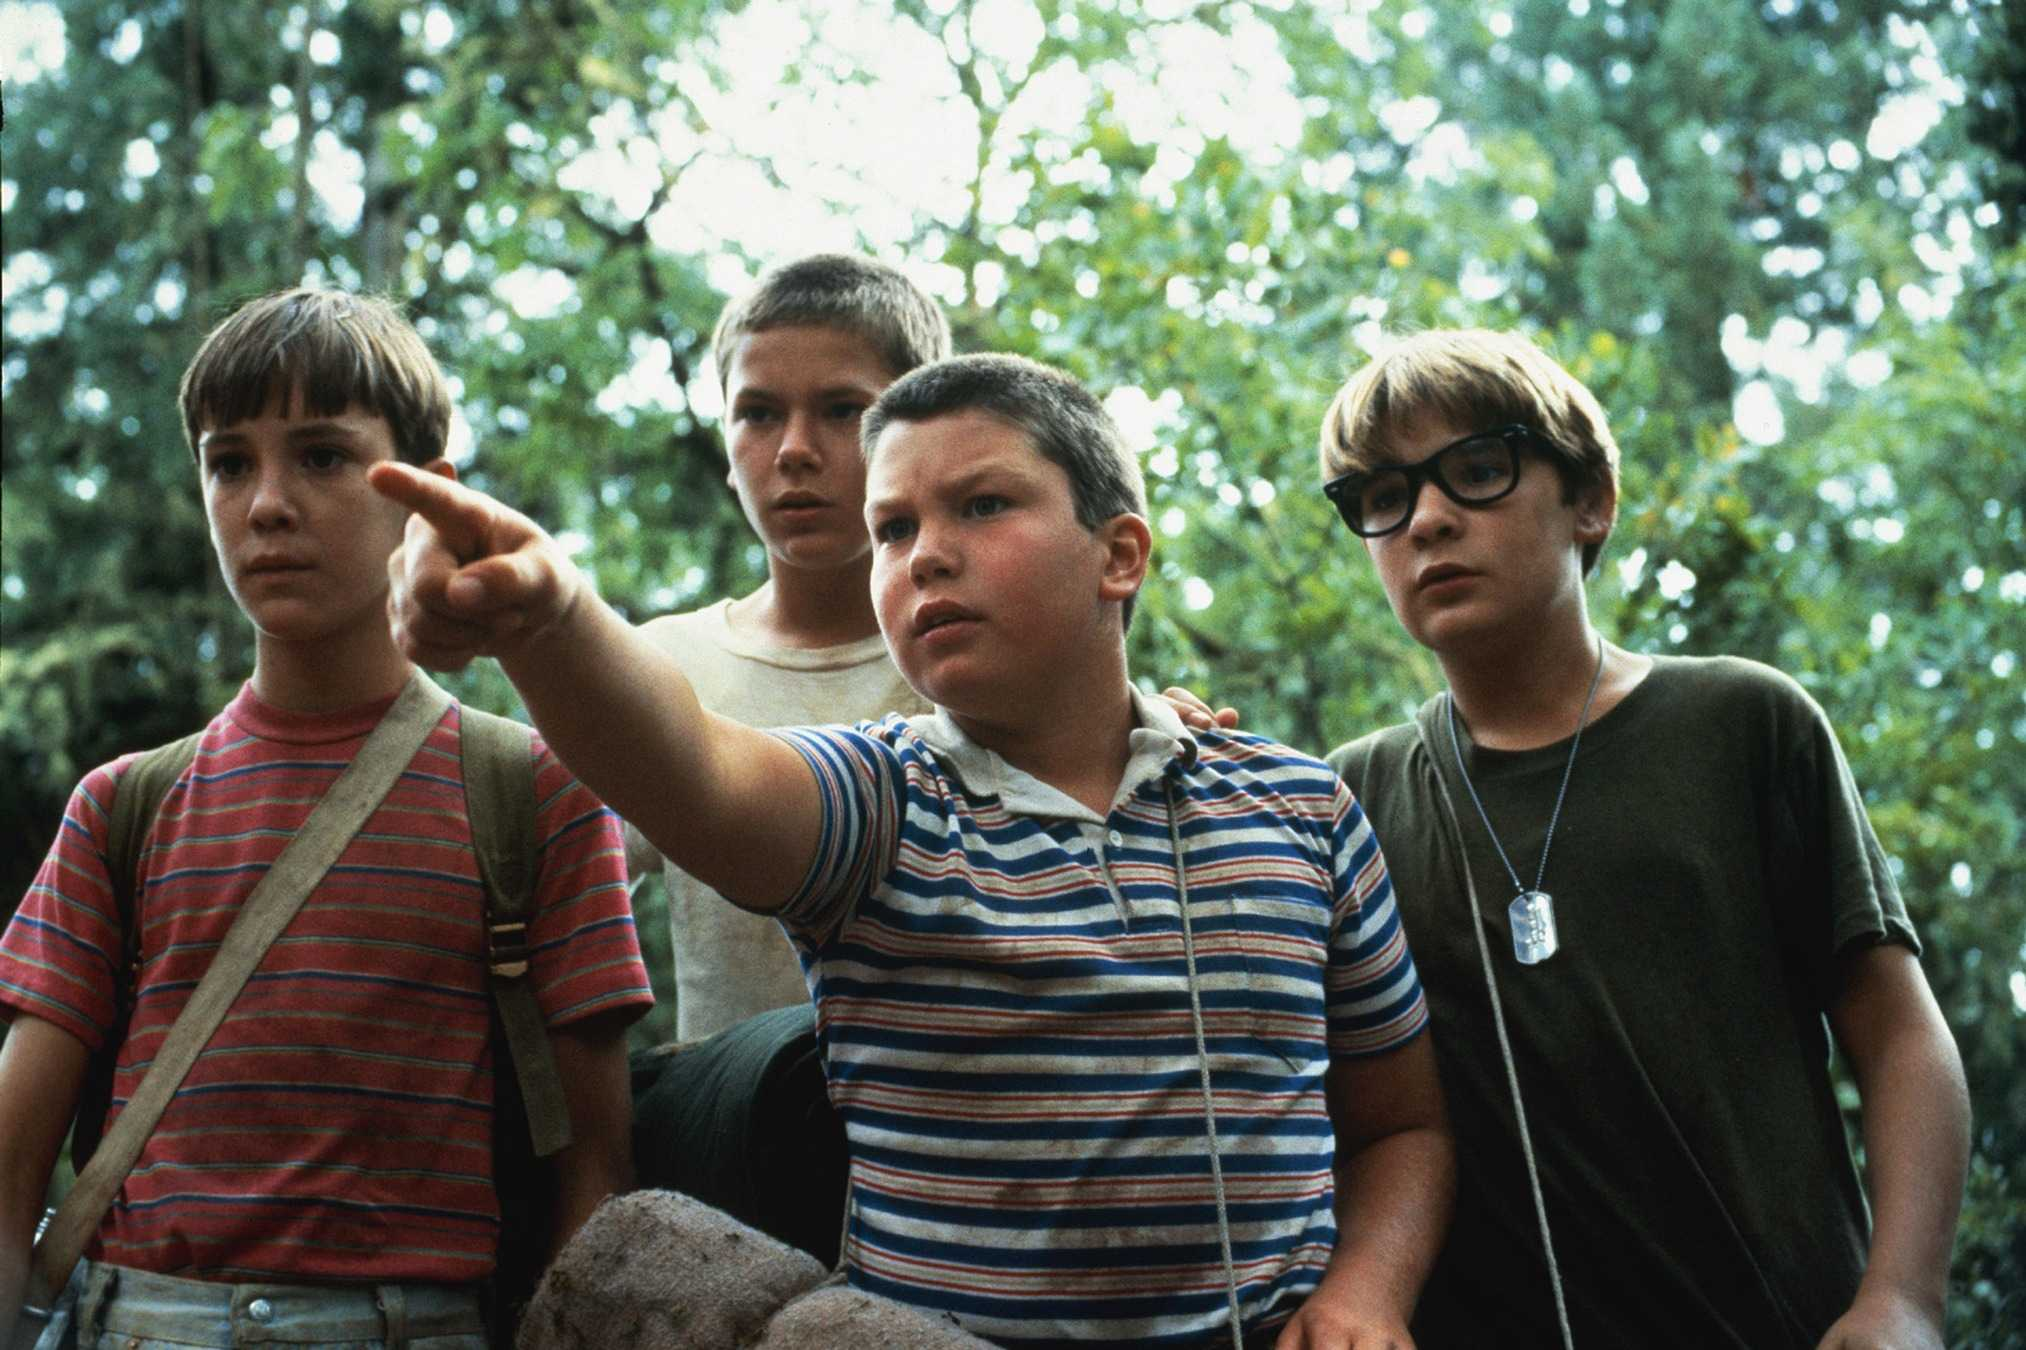 Wil Wheaton, River Phoenix, Corey Feldman, and Jerry O'Connell in